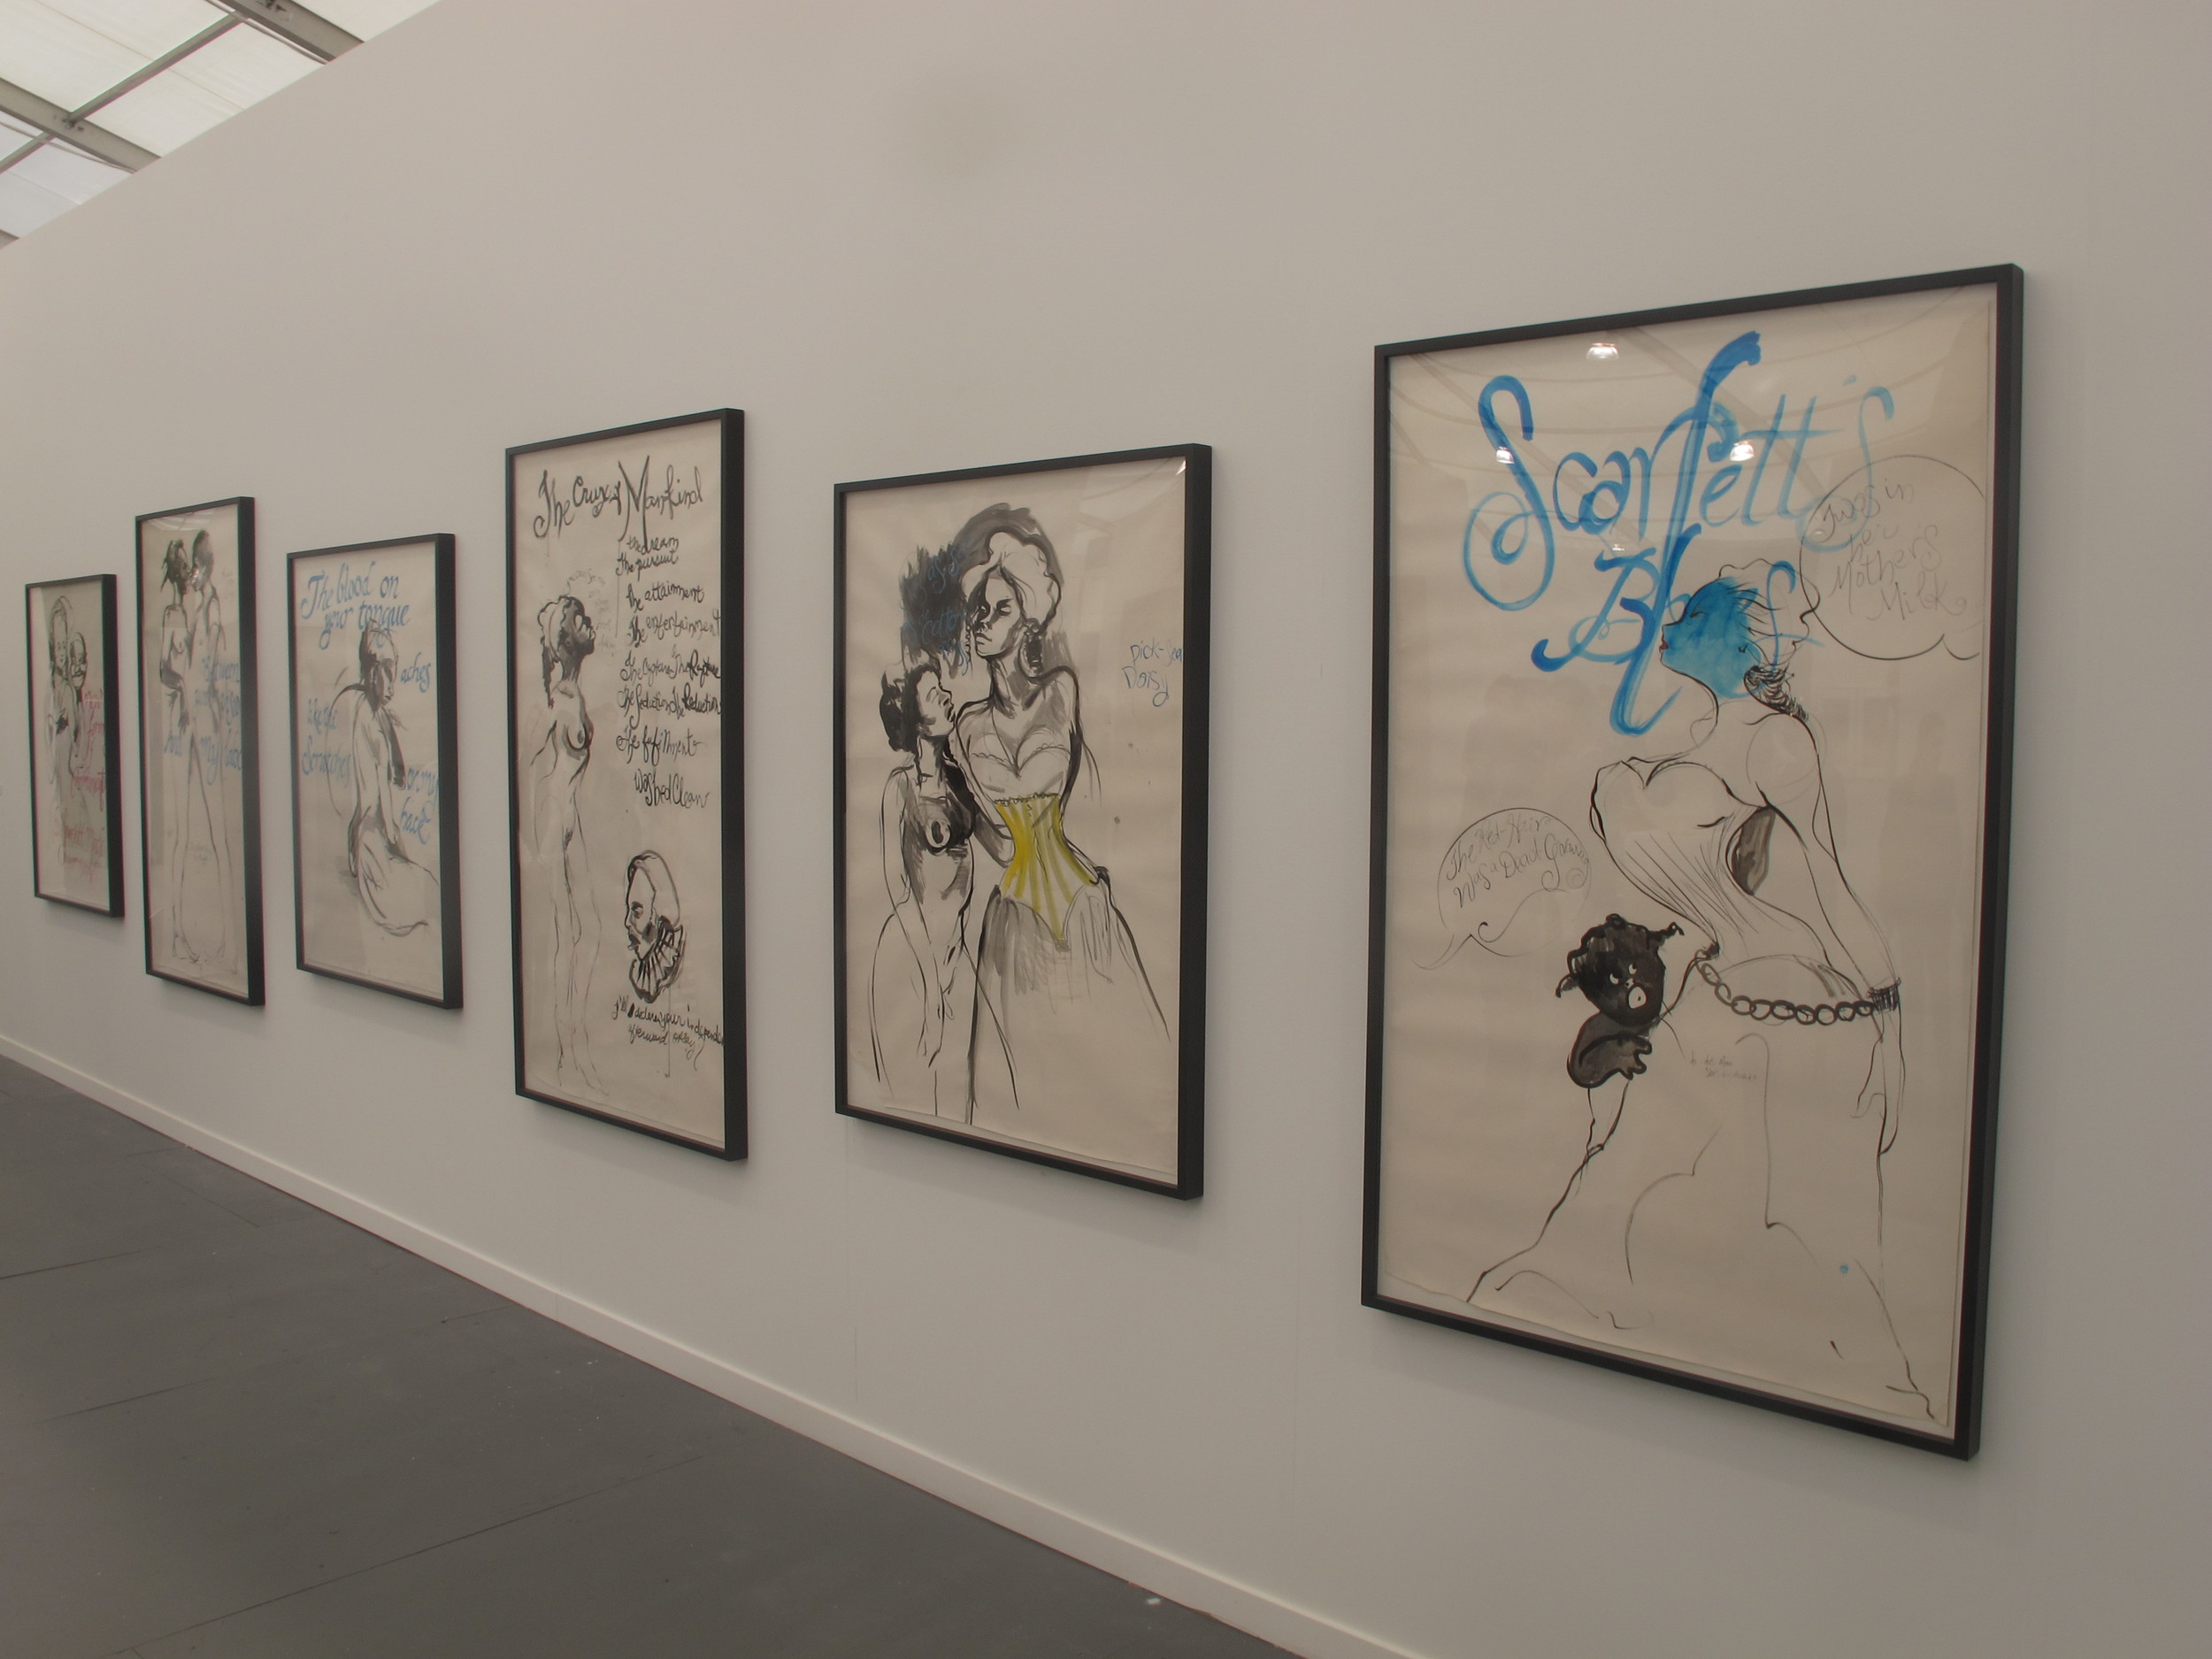 The Kara Walker installation of one-of-a-kind works on paper at Sikkema Jenkins & Co. sold within seconds of the opening. Understandably so.